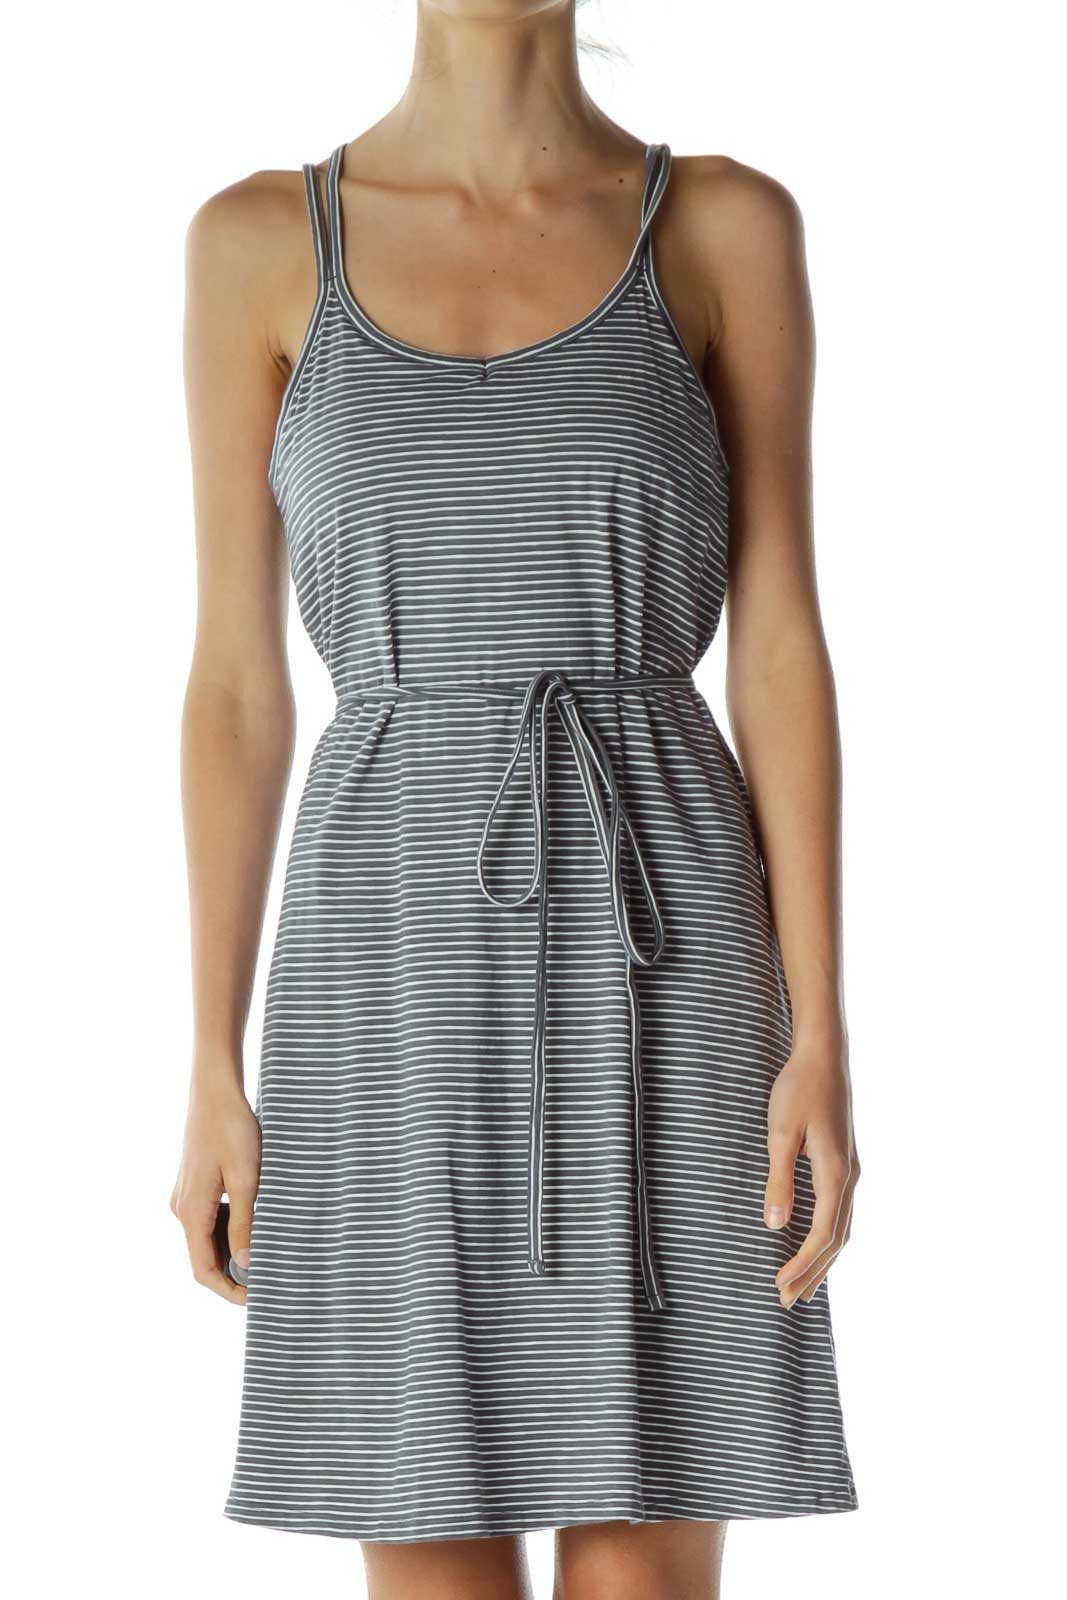 Gray White Striped Athletic Dress Front